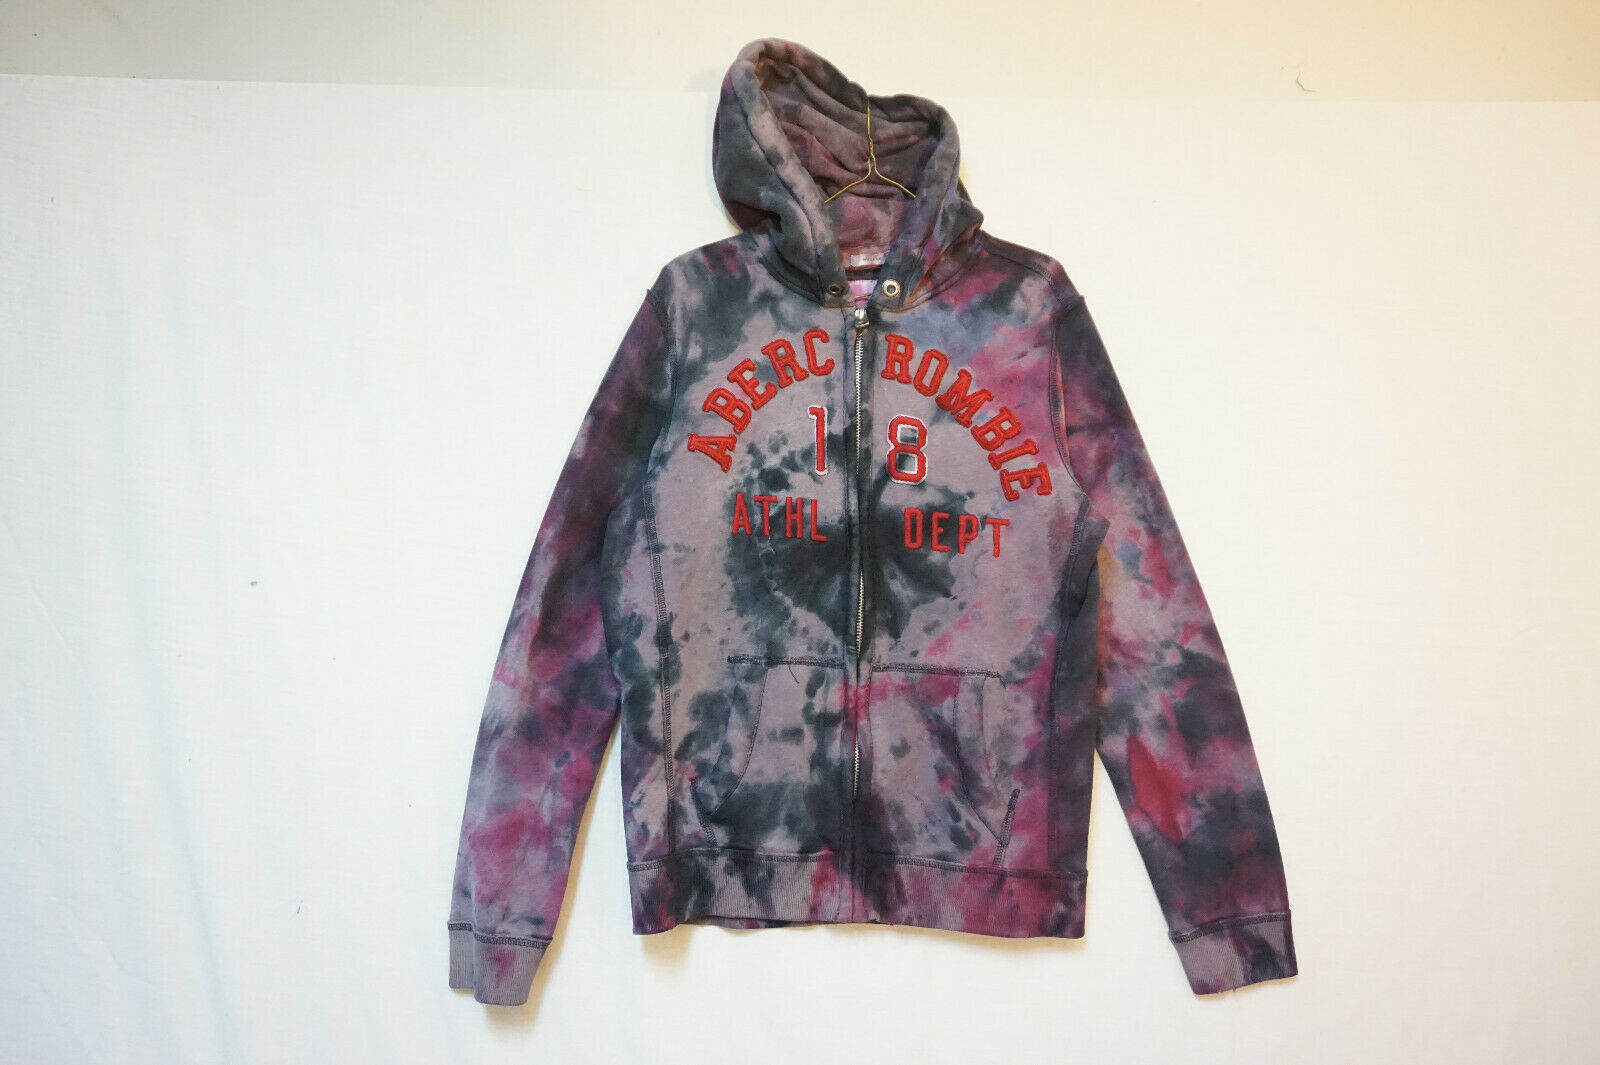 Primary image for Abercrombie Midweight Hoodie Sweatshirt, Tie-Dye, Men's Small Muscle Fit B593